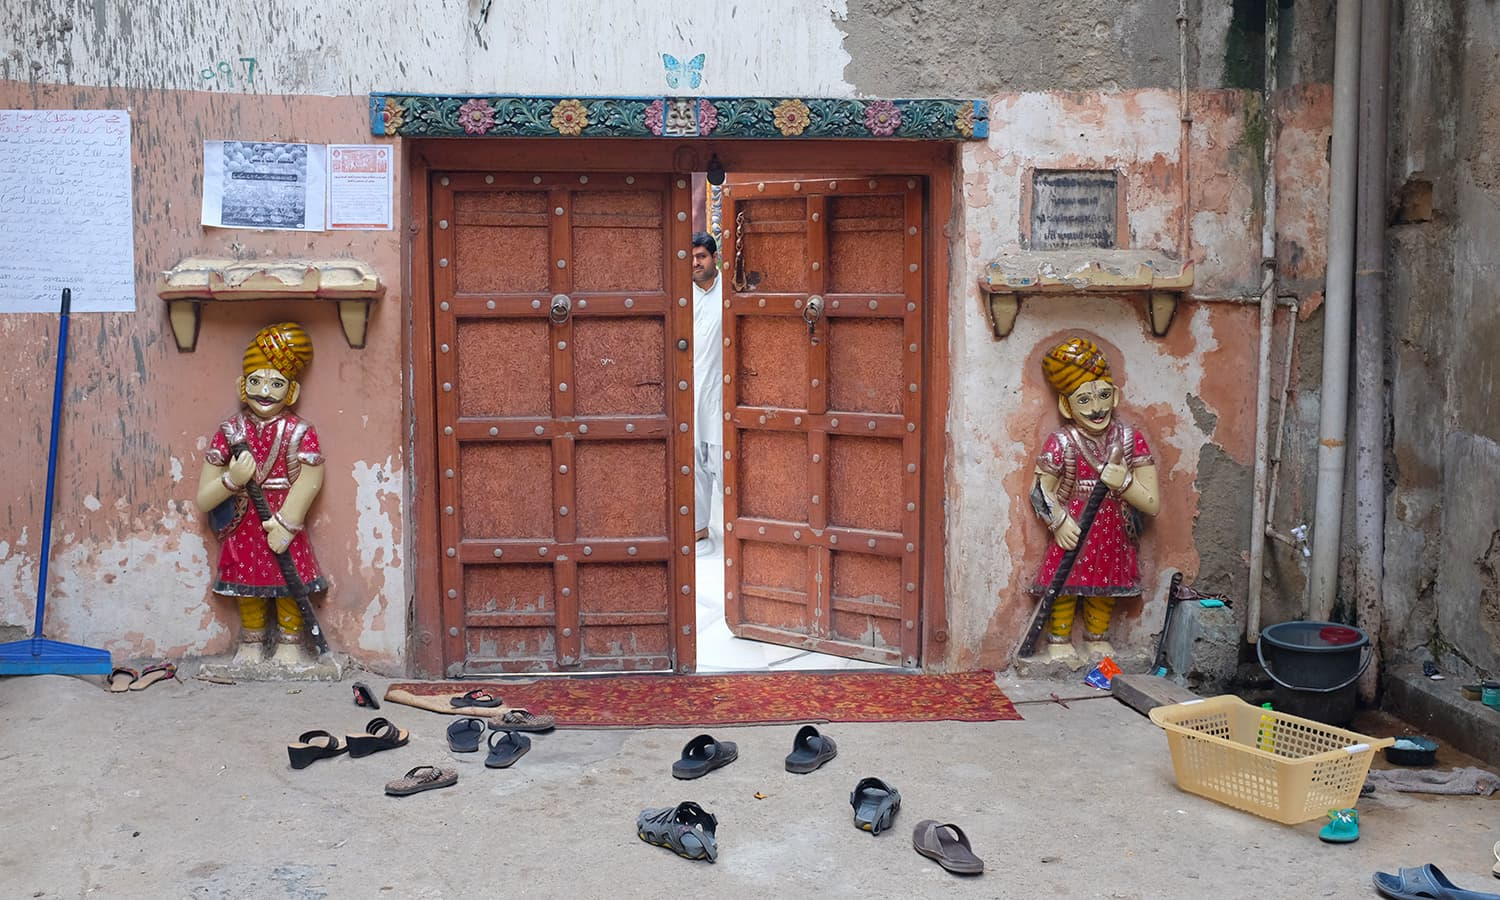 The entrance to the mandir.